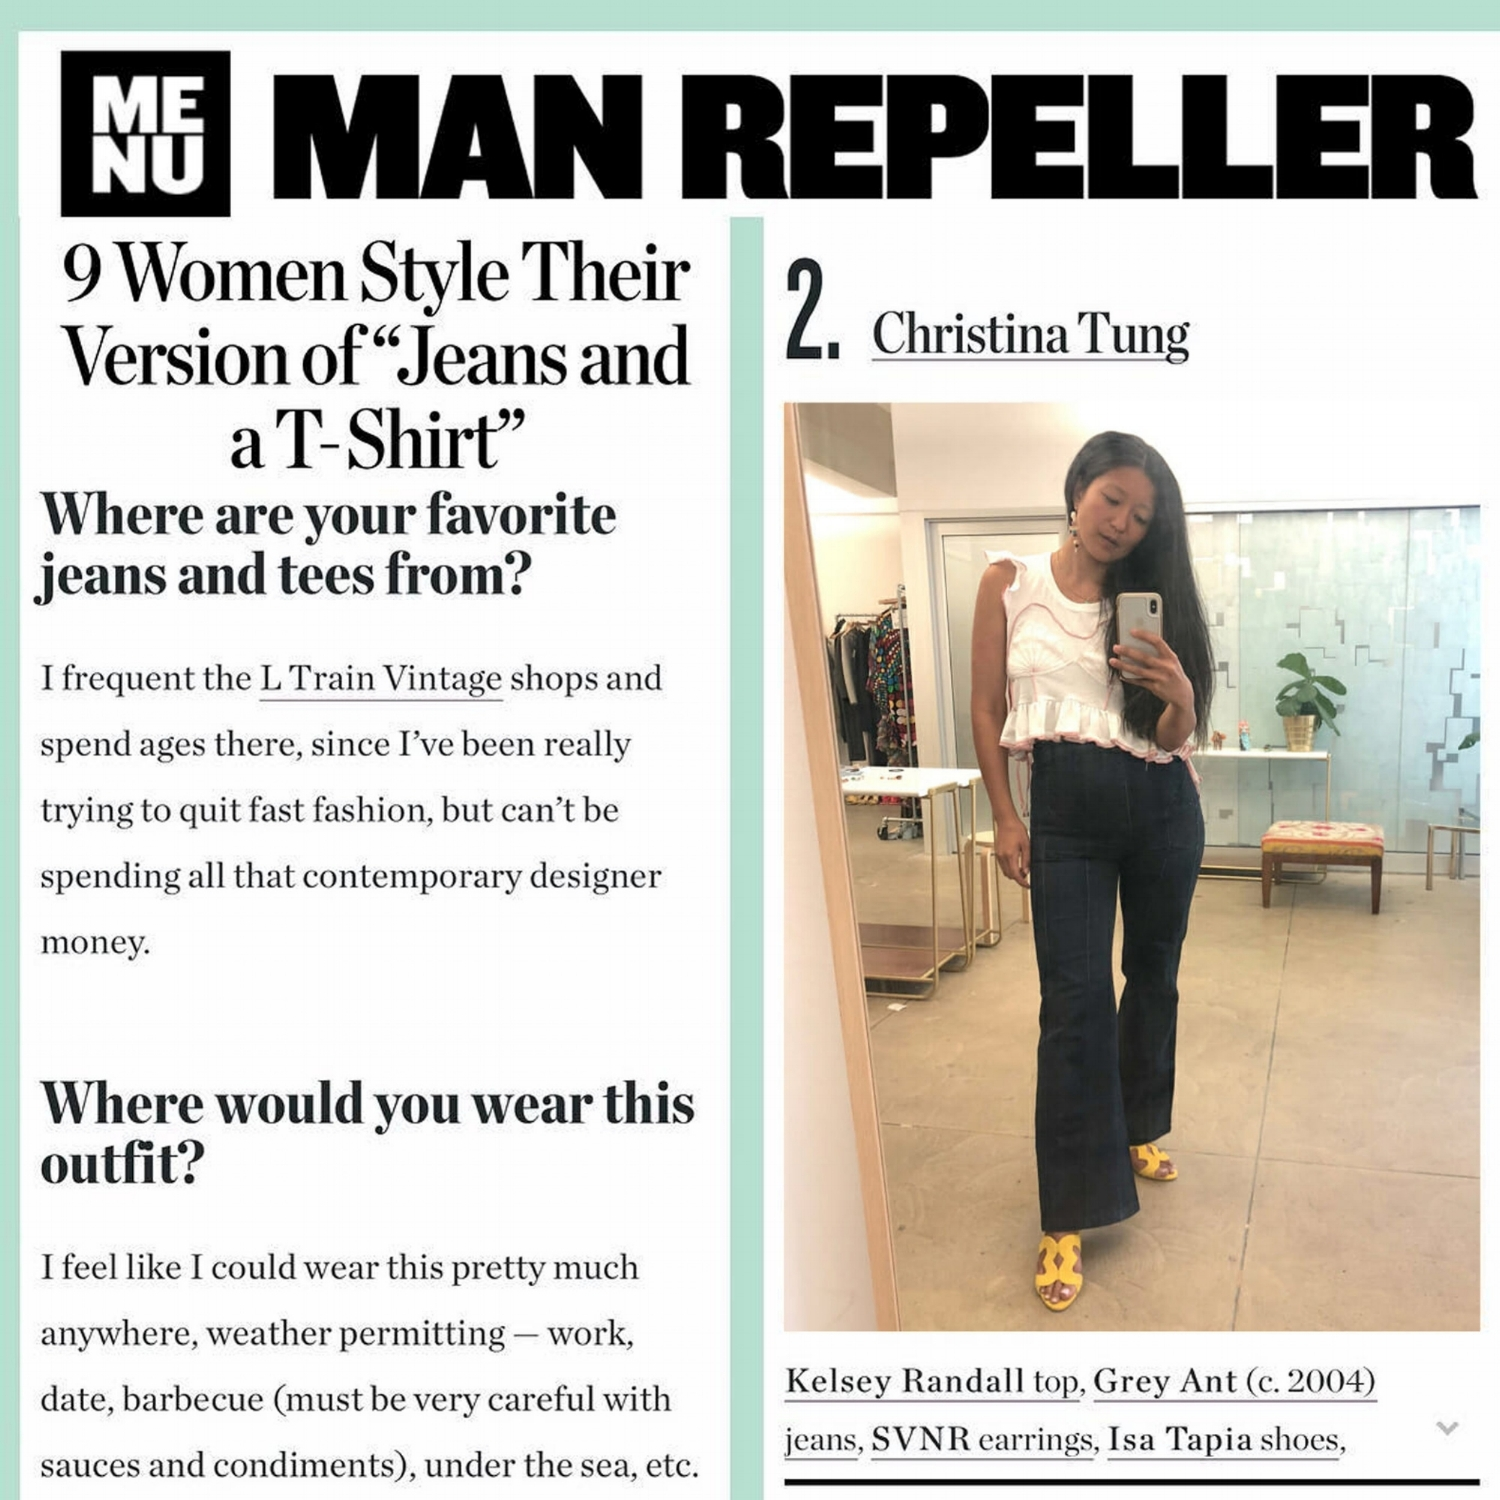 Manrepeller blog post featuring PR agent house of christina tung wearing kelsey randall hanes mermaid embroidered shell ruffle side tie pink and white tee t-shirt   Kelsey Randall    dreamy demi-couture womenswear crafted in nyc    for future icons, rock stars, and goddesses    made-to-measure bespoke handcrafted custom bridal    made in NYC brooklyn bushwick new york city    sustainable ethical diverse boss lady werk